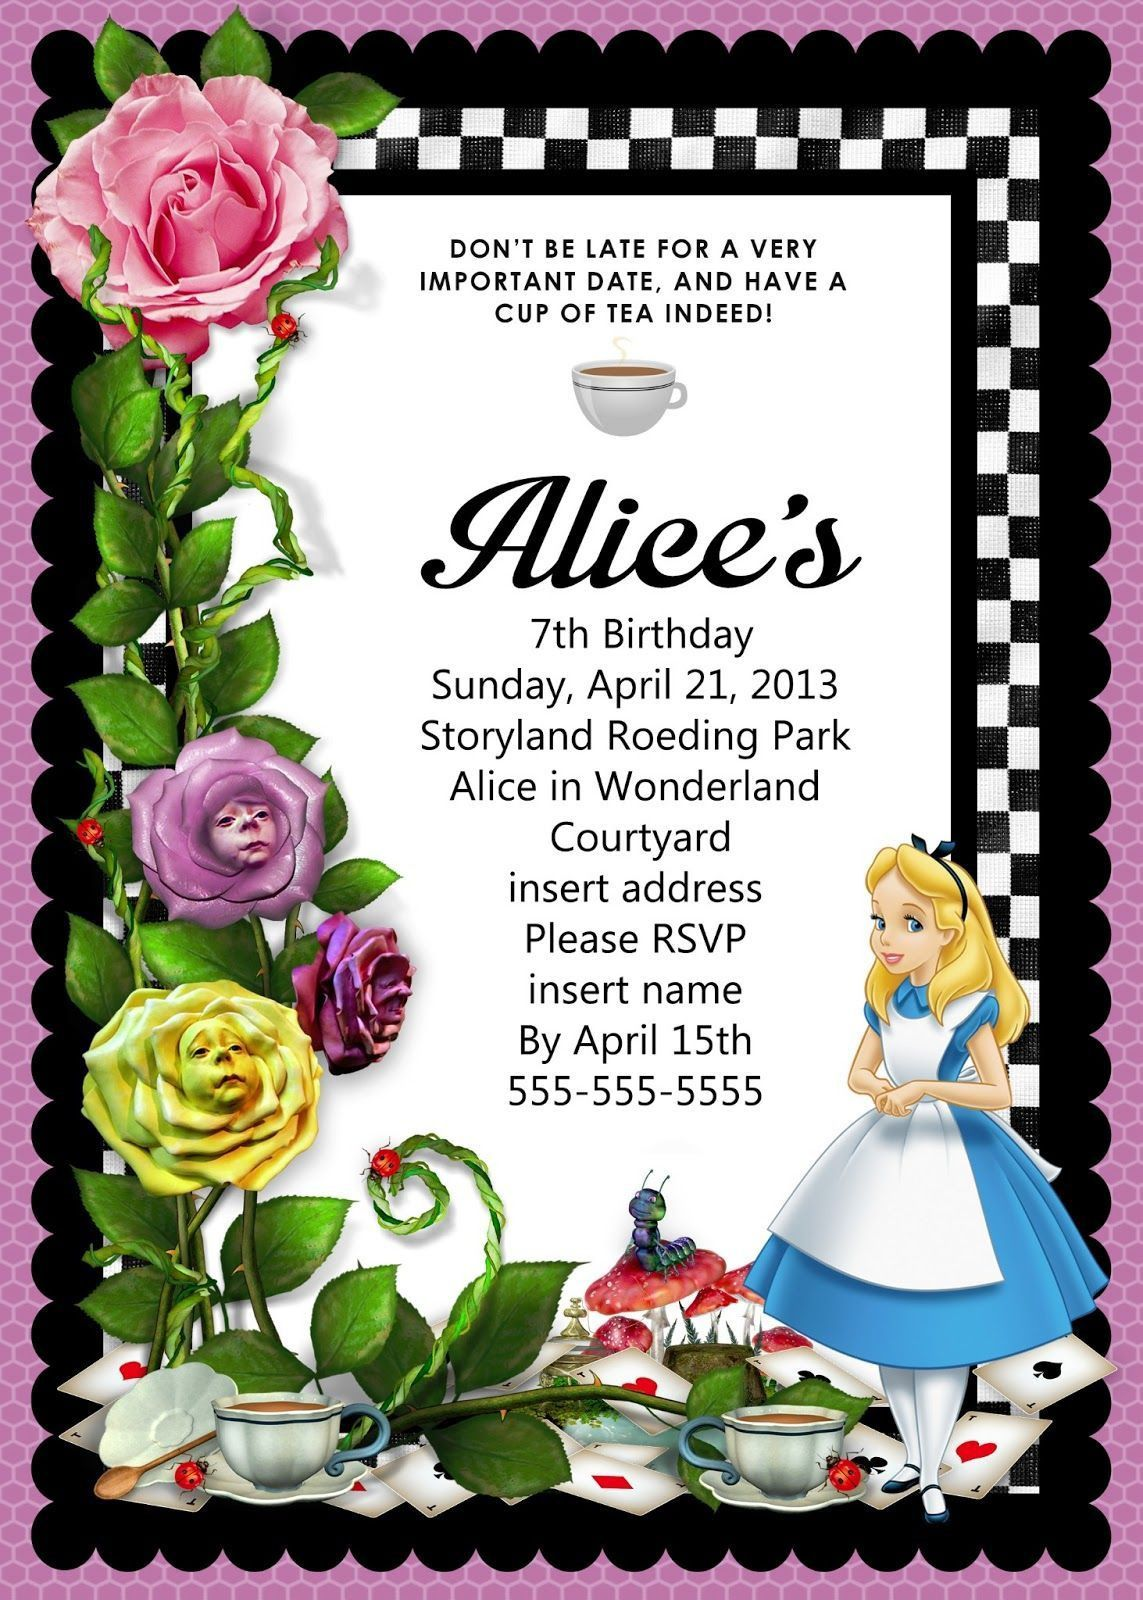 009 Fantastic Alice In Wonderland Invitation Template High Definition  Templates Birthday Free Wedding Wording DownloadFull